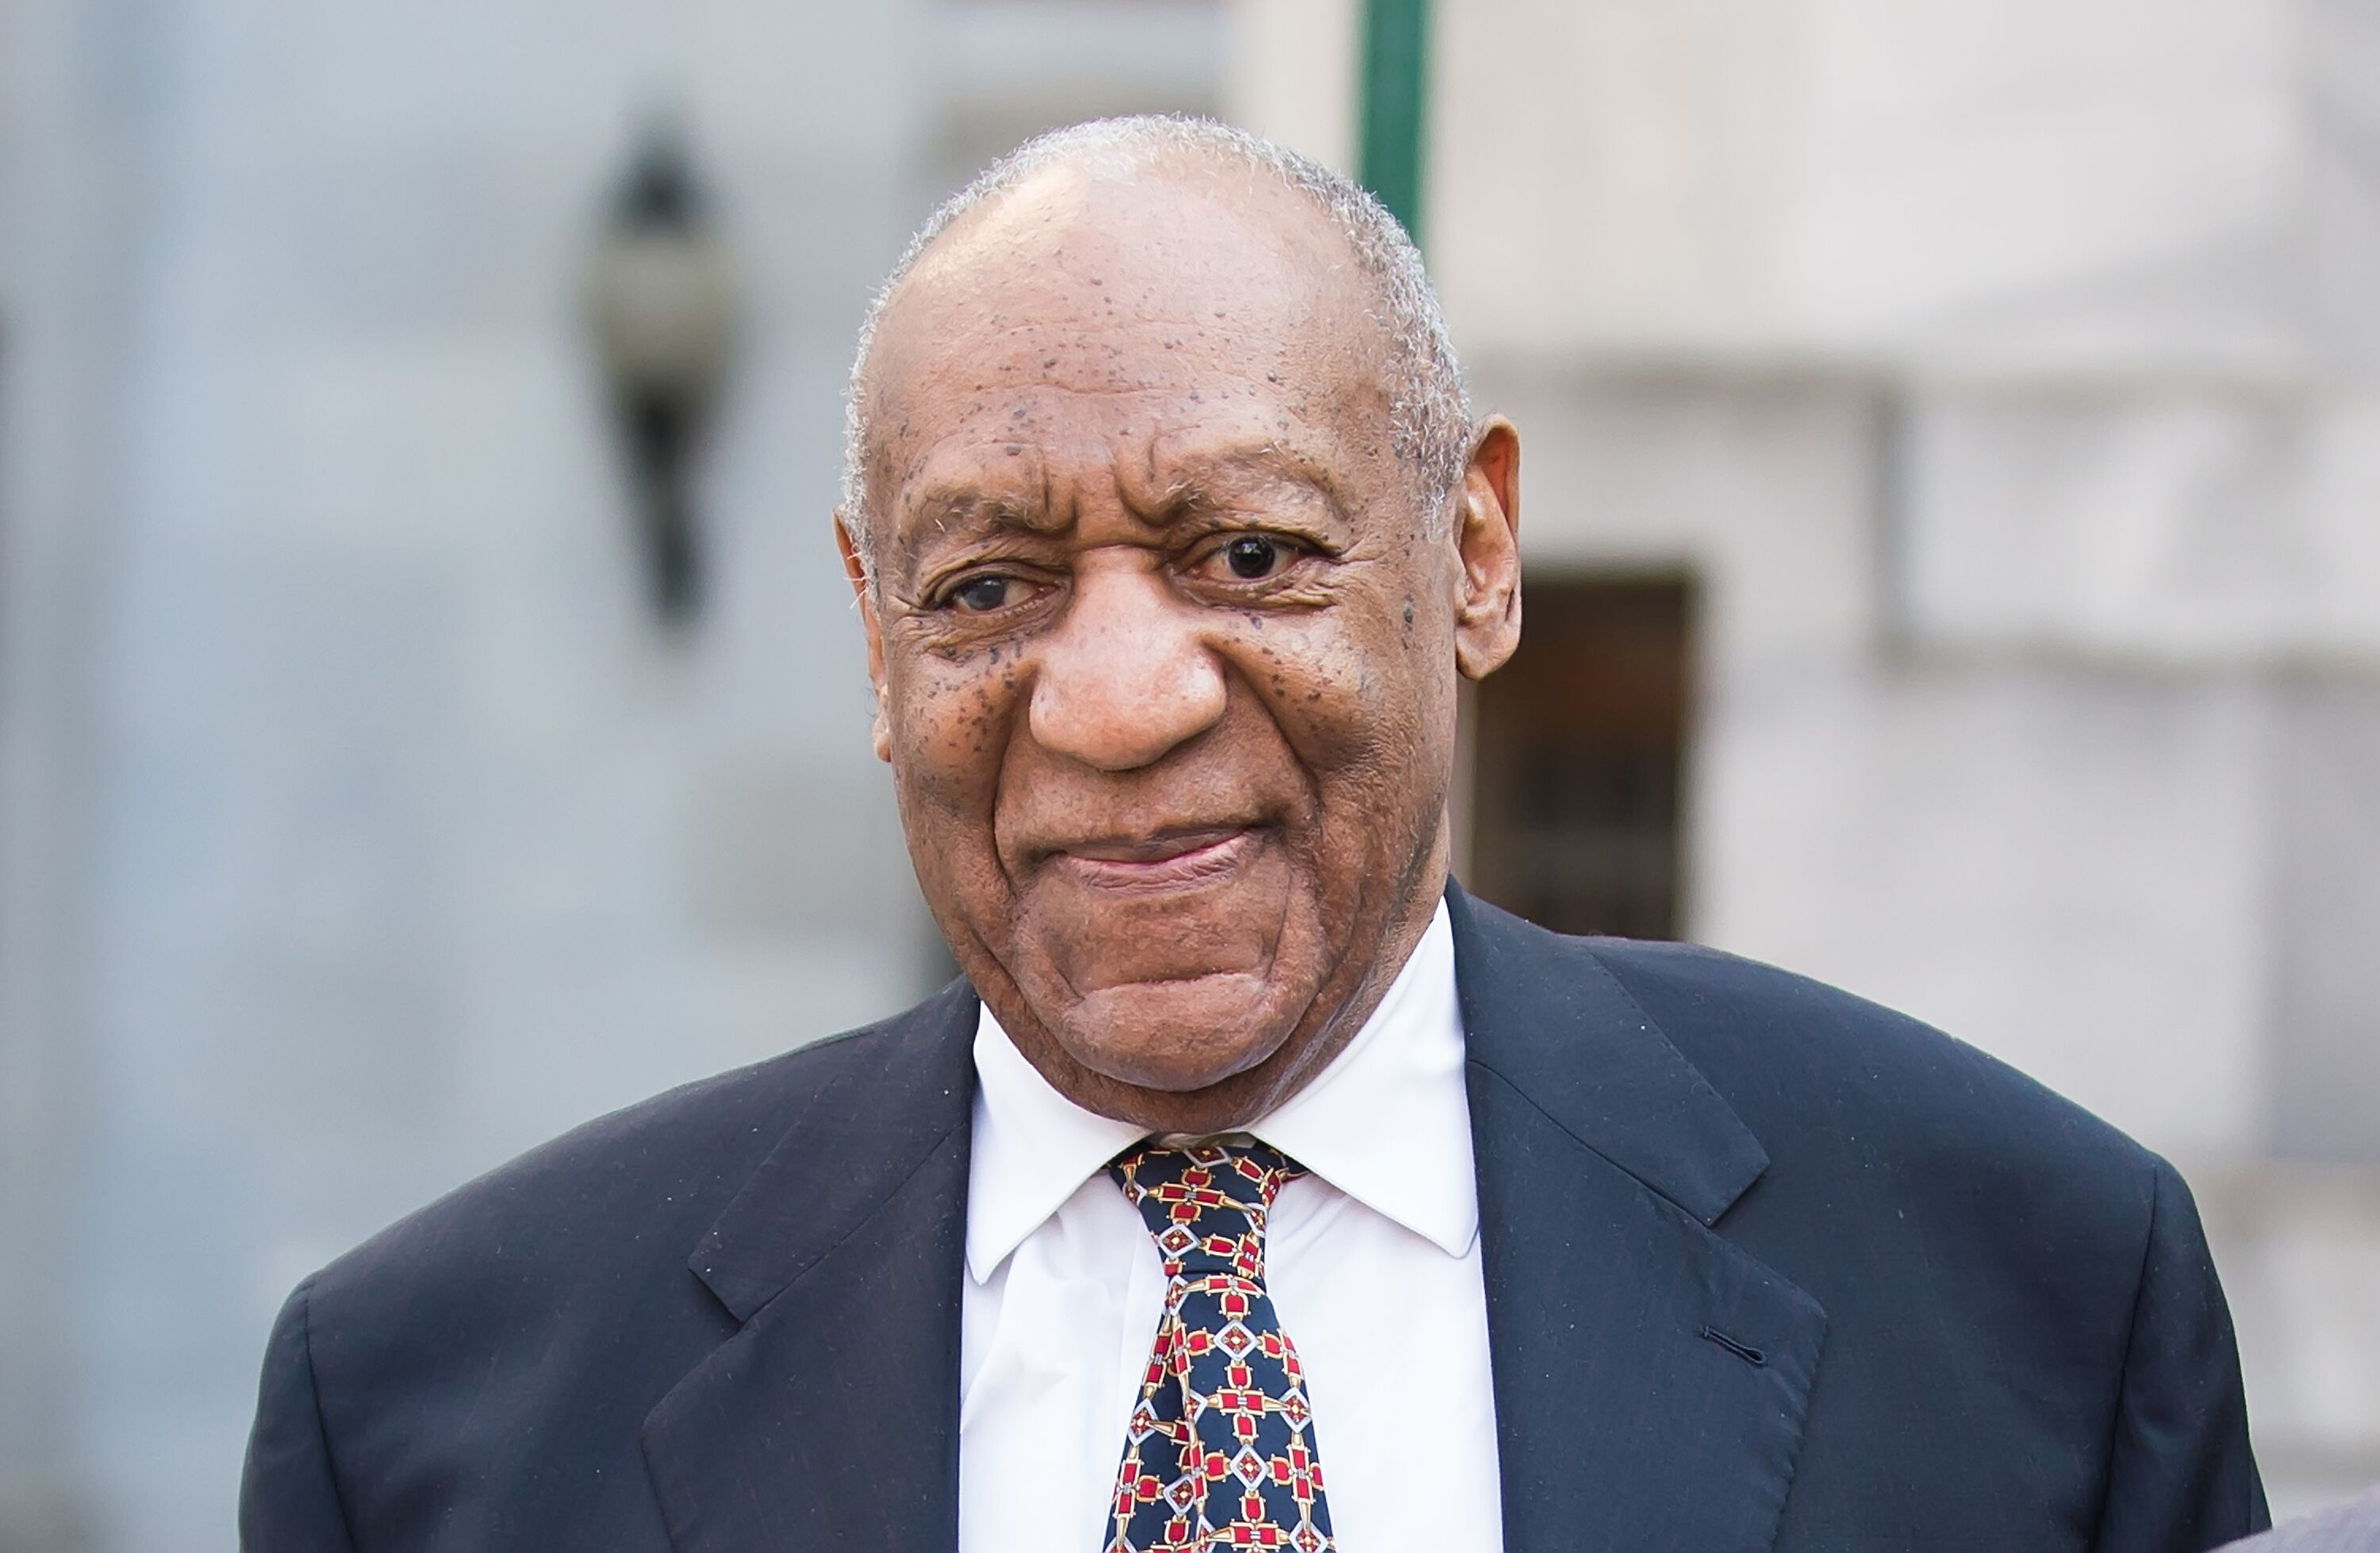 DIsgraced comedian Bill Cosby exiting the courtroom during the Andrea Constand trial/ Source: Getty Images